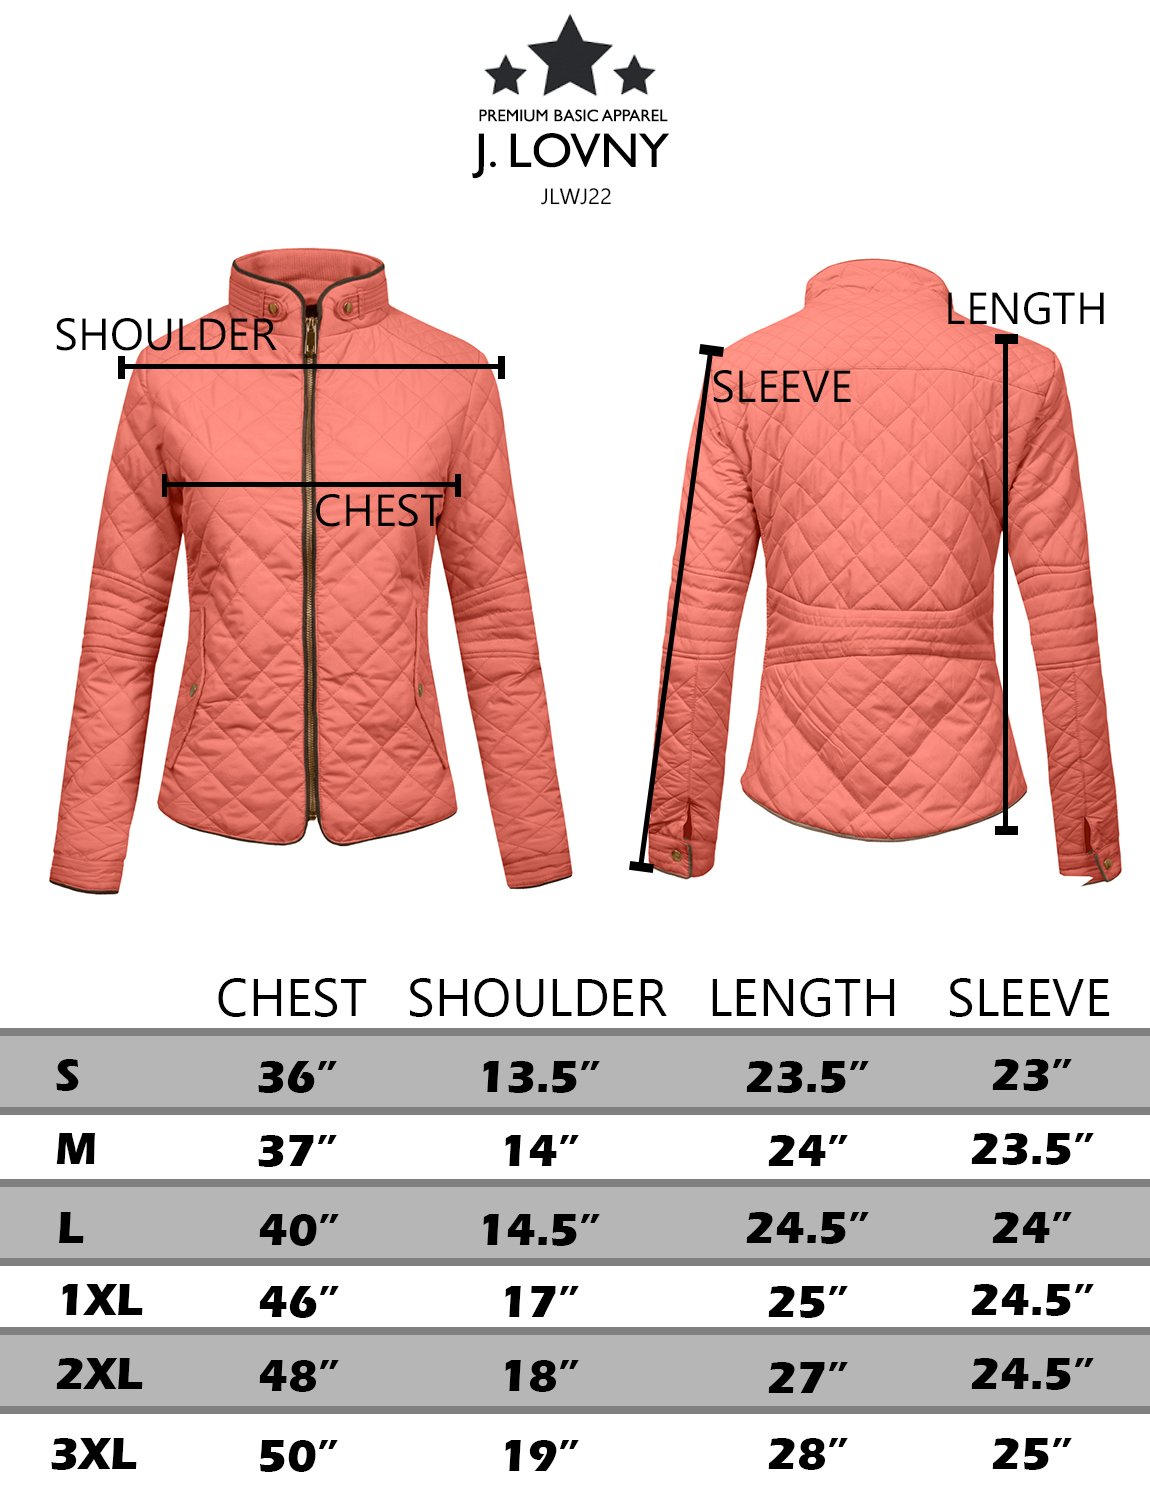 J. LOVNY Womens Lightweight Quilted Warm Zip Jacket/Vest with Pocket Details by J. LOVNY (Image #7)